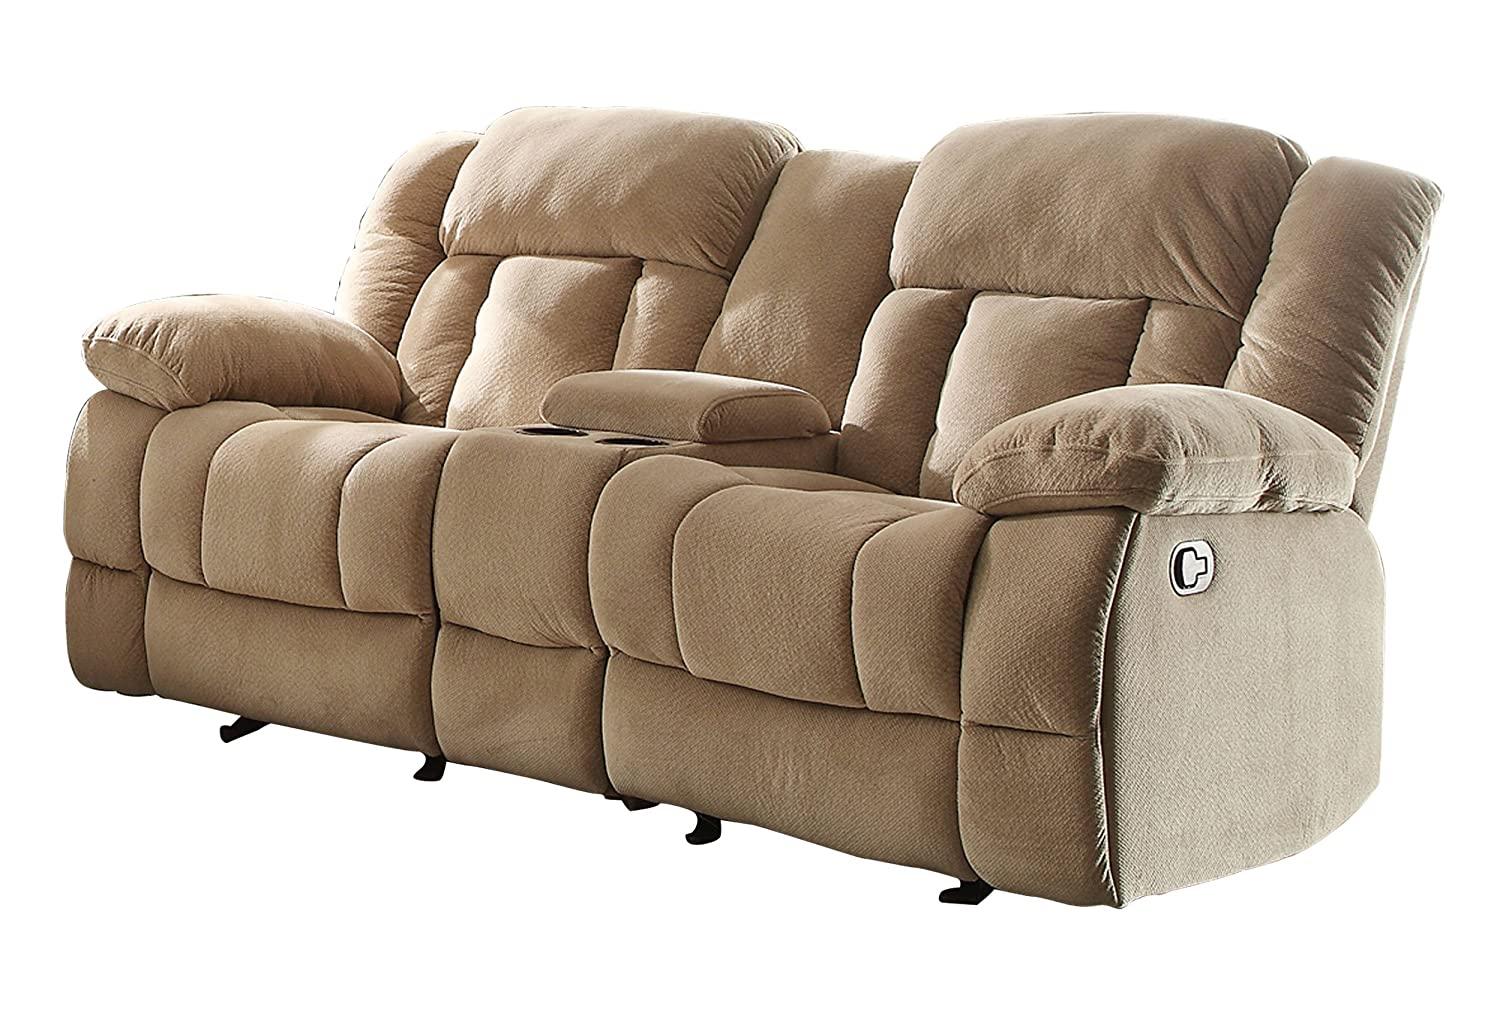 Homelegance 9636nf 2 Double Glider Reclining Loveseat With Center